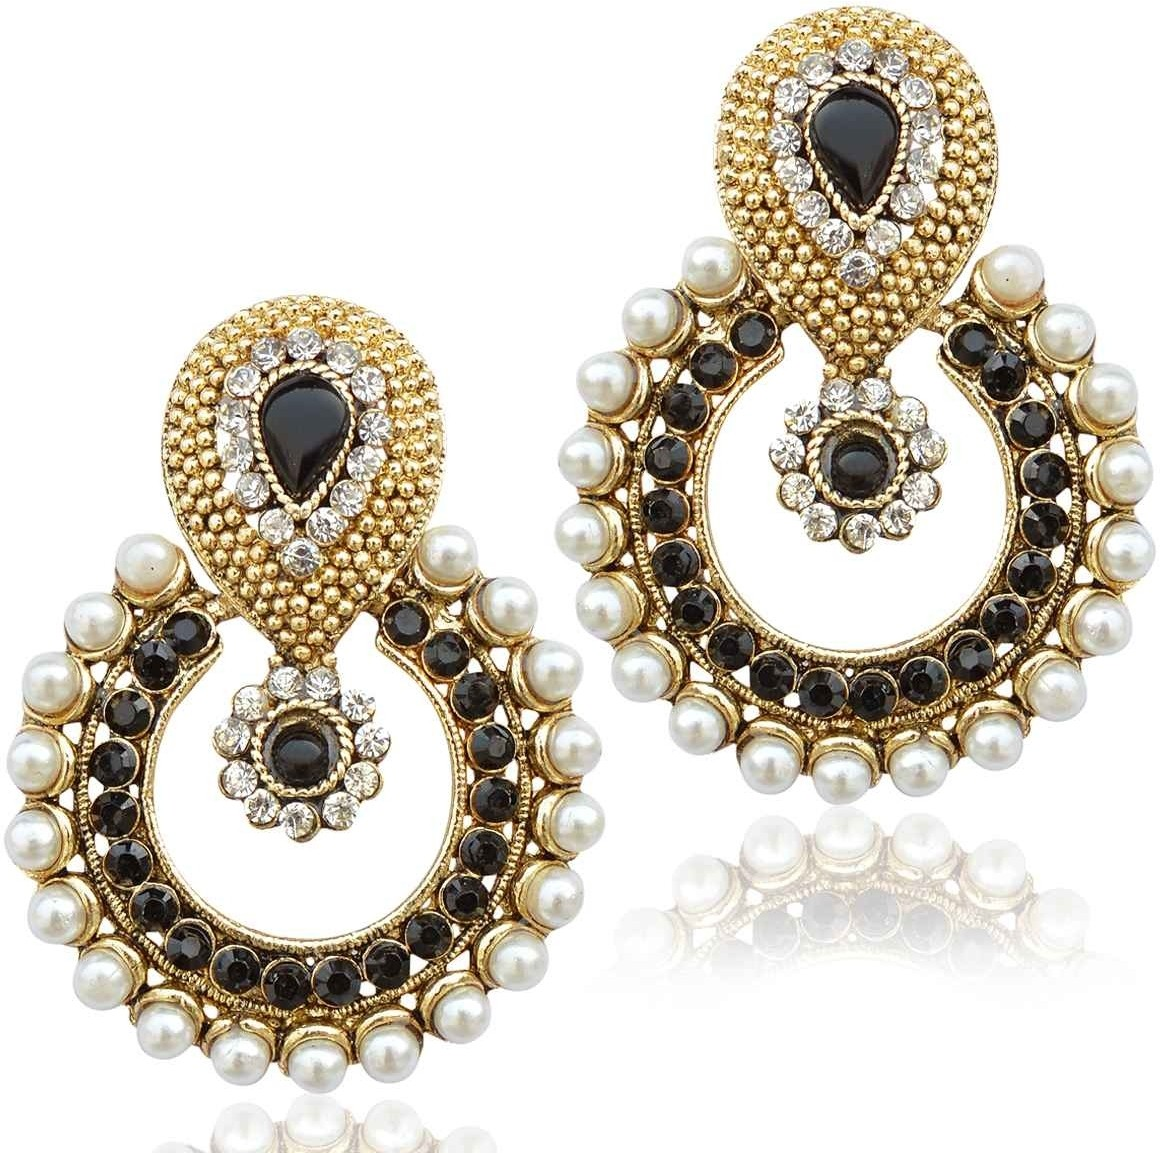 Deals - Delhi - Shop More <br> Necklaces, Chains.<br> Category - jewellery<br> Business - Flipkart.com